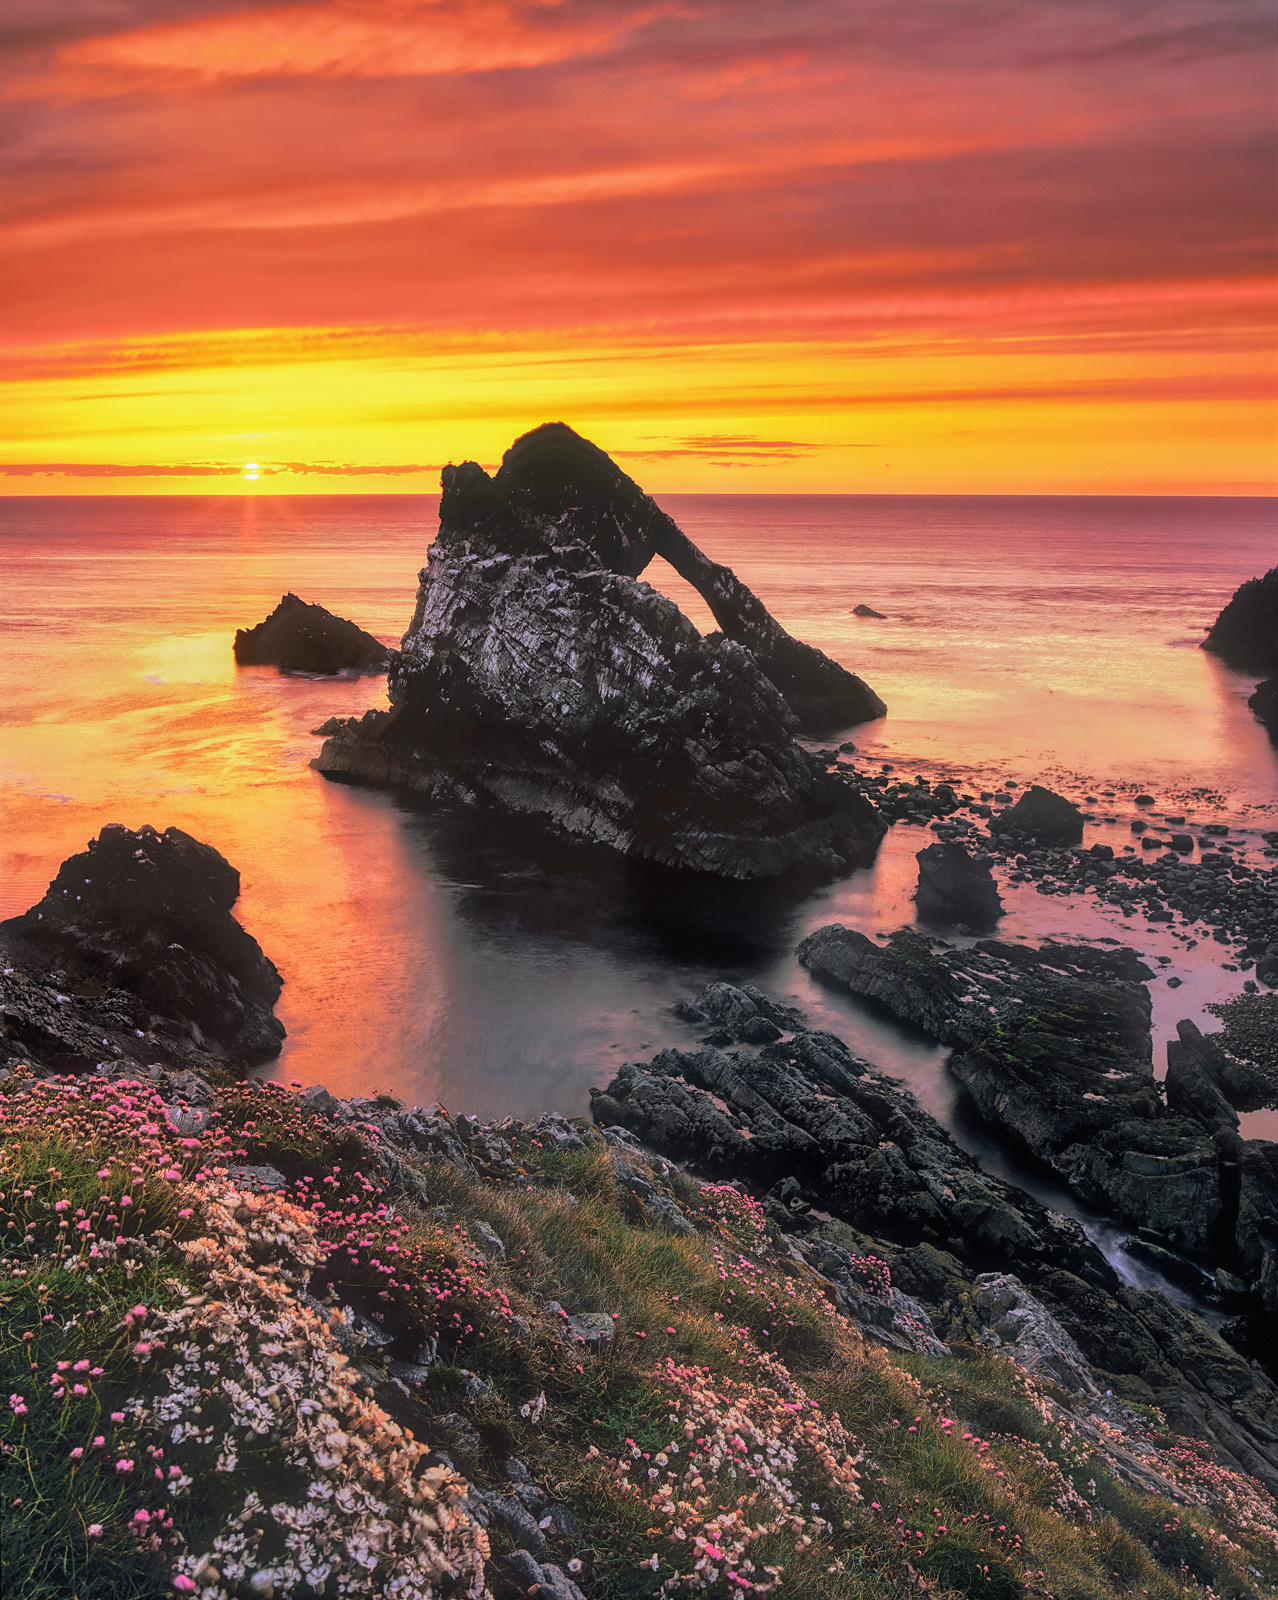 Sunrise at Bowfiddle rock during the summer months when most of the cliff top flowers are blooming at Portknockie on the Moray coast.